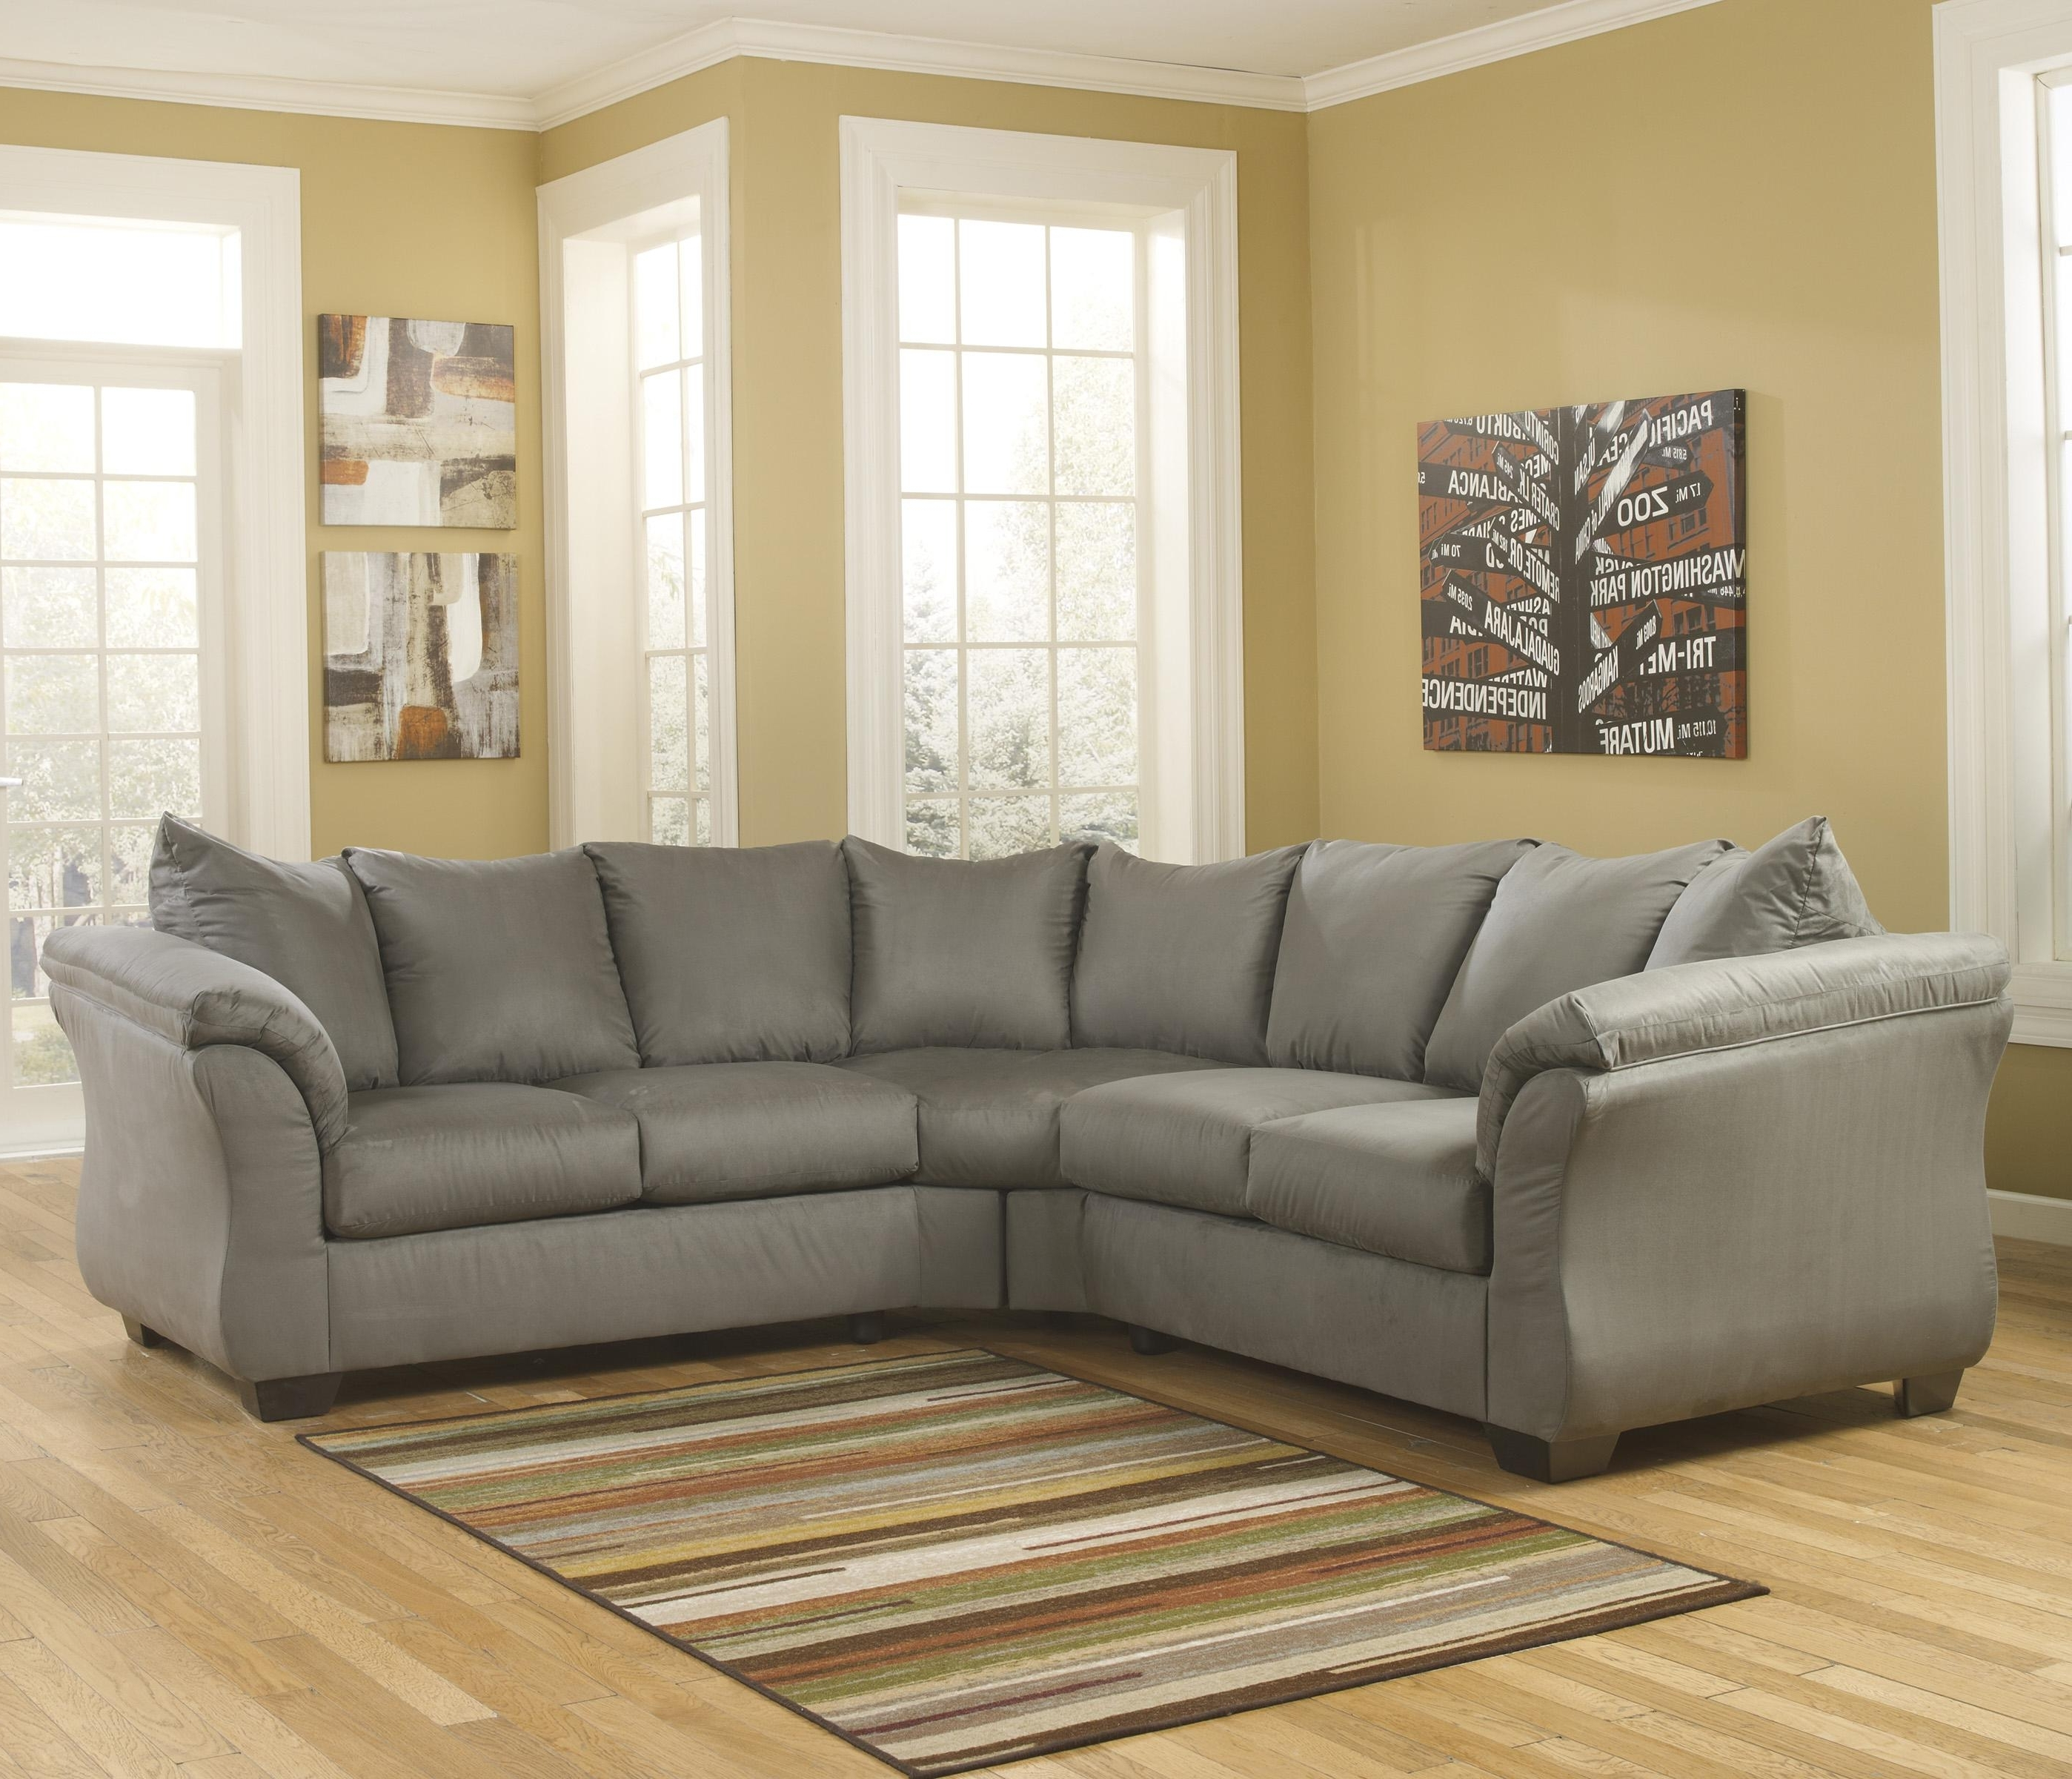 Popular Darcy – Cobblestone Sectional Sofasignature Designashley Intended For Eau Claire Wi Sectional Sofas (View 12 of 15)